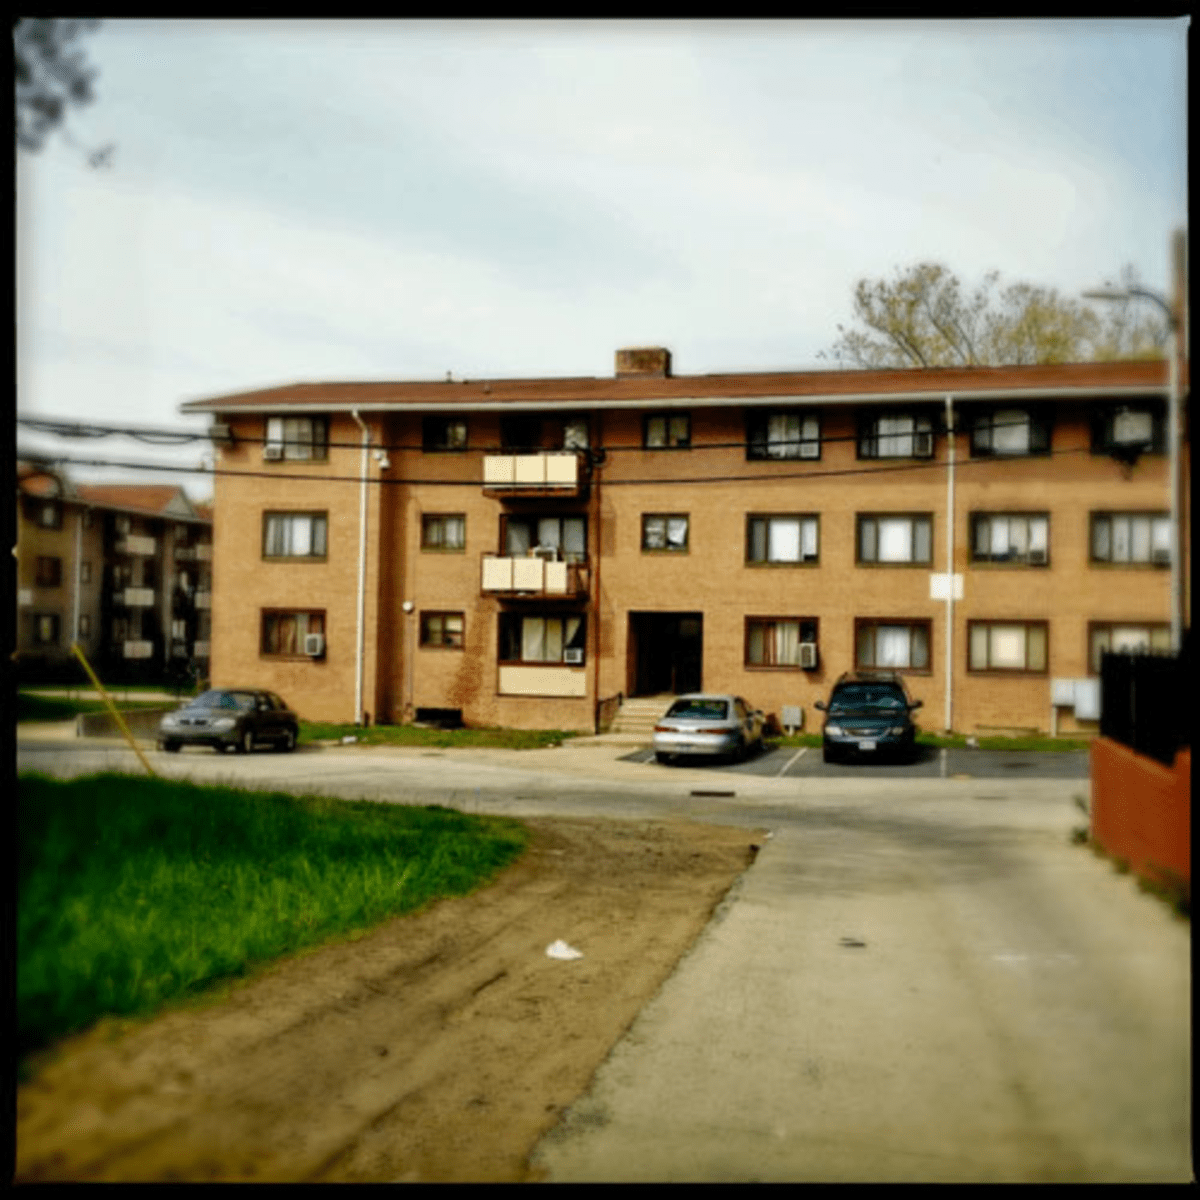 The Park Morton public housing complex has languished as New Communities struggles to get off the ground.